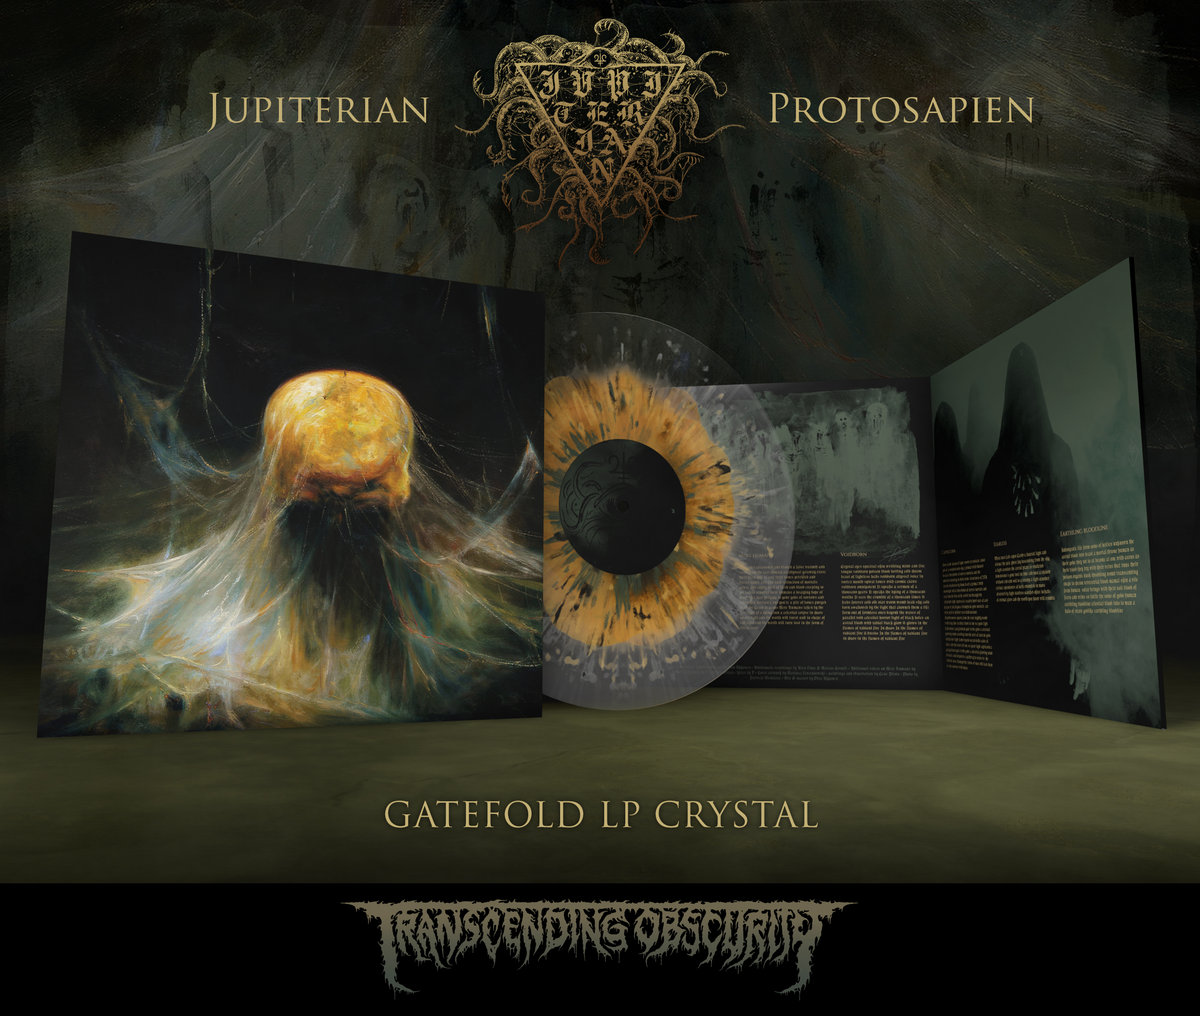 JUPITERIAN - Protosapien Gatefold LP with Sandalwood Fragrance (Crystal Variant)